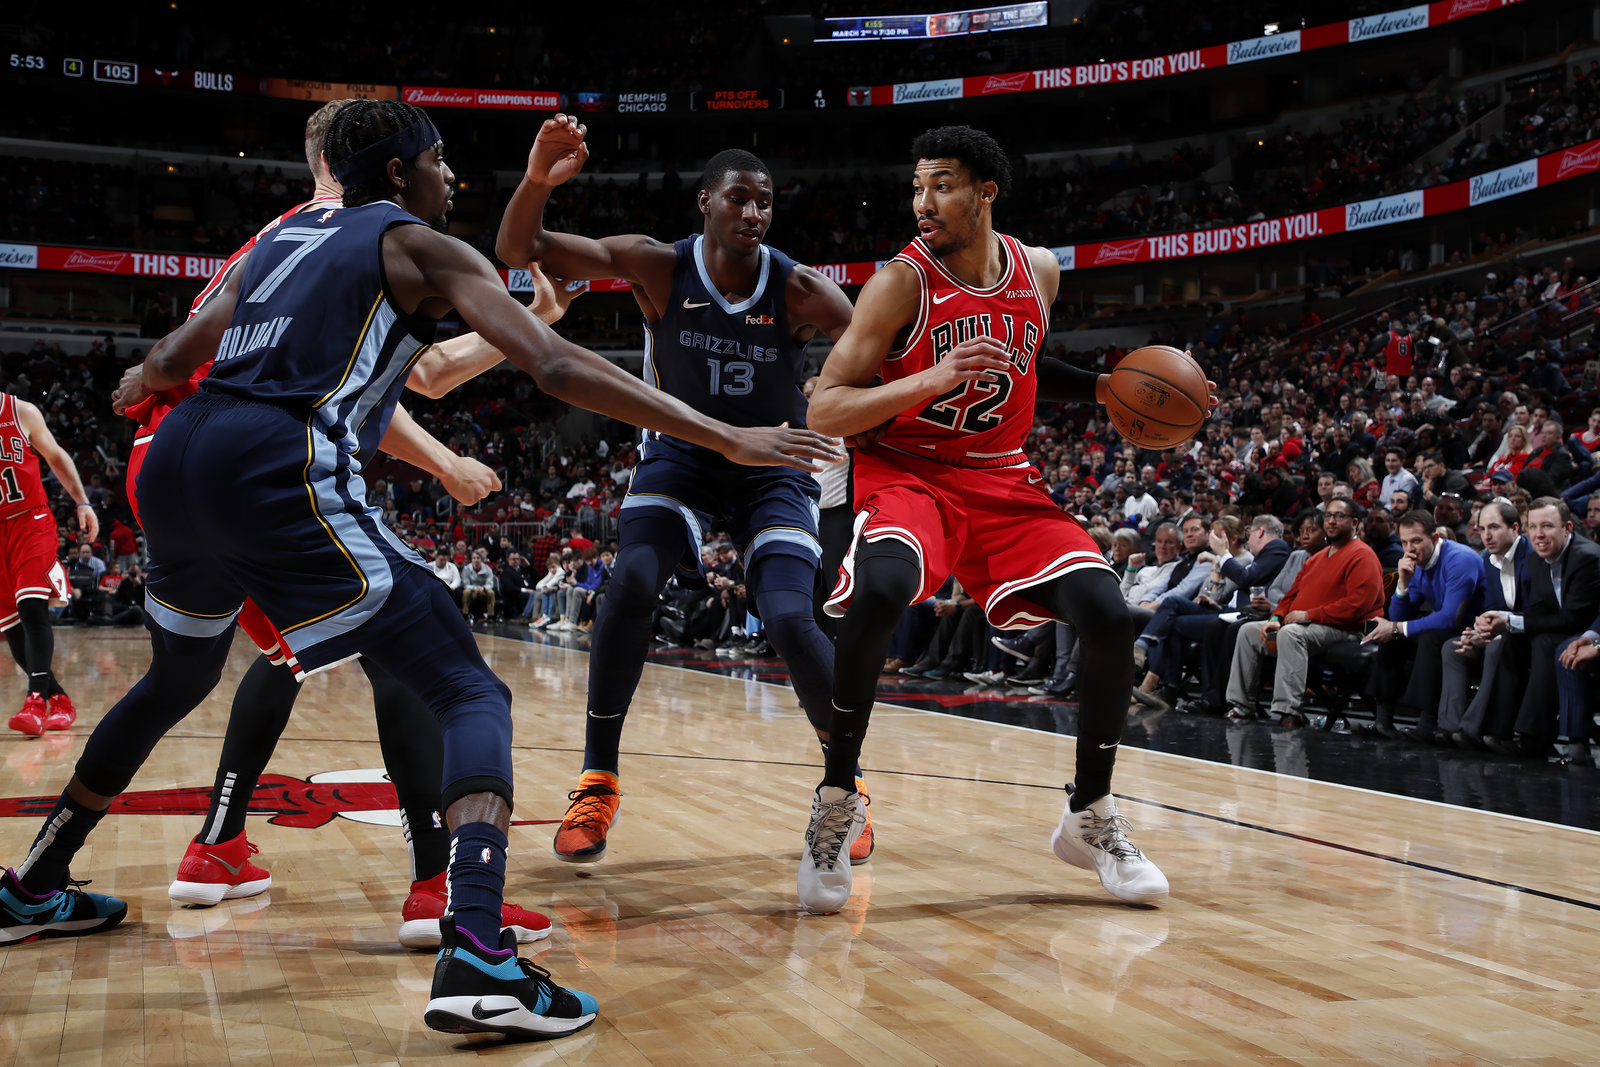 Otto Porter Jr. looks to score against Memphis Grizzlies